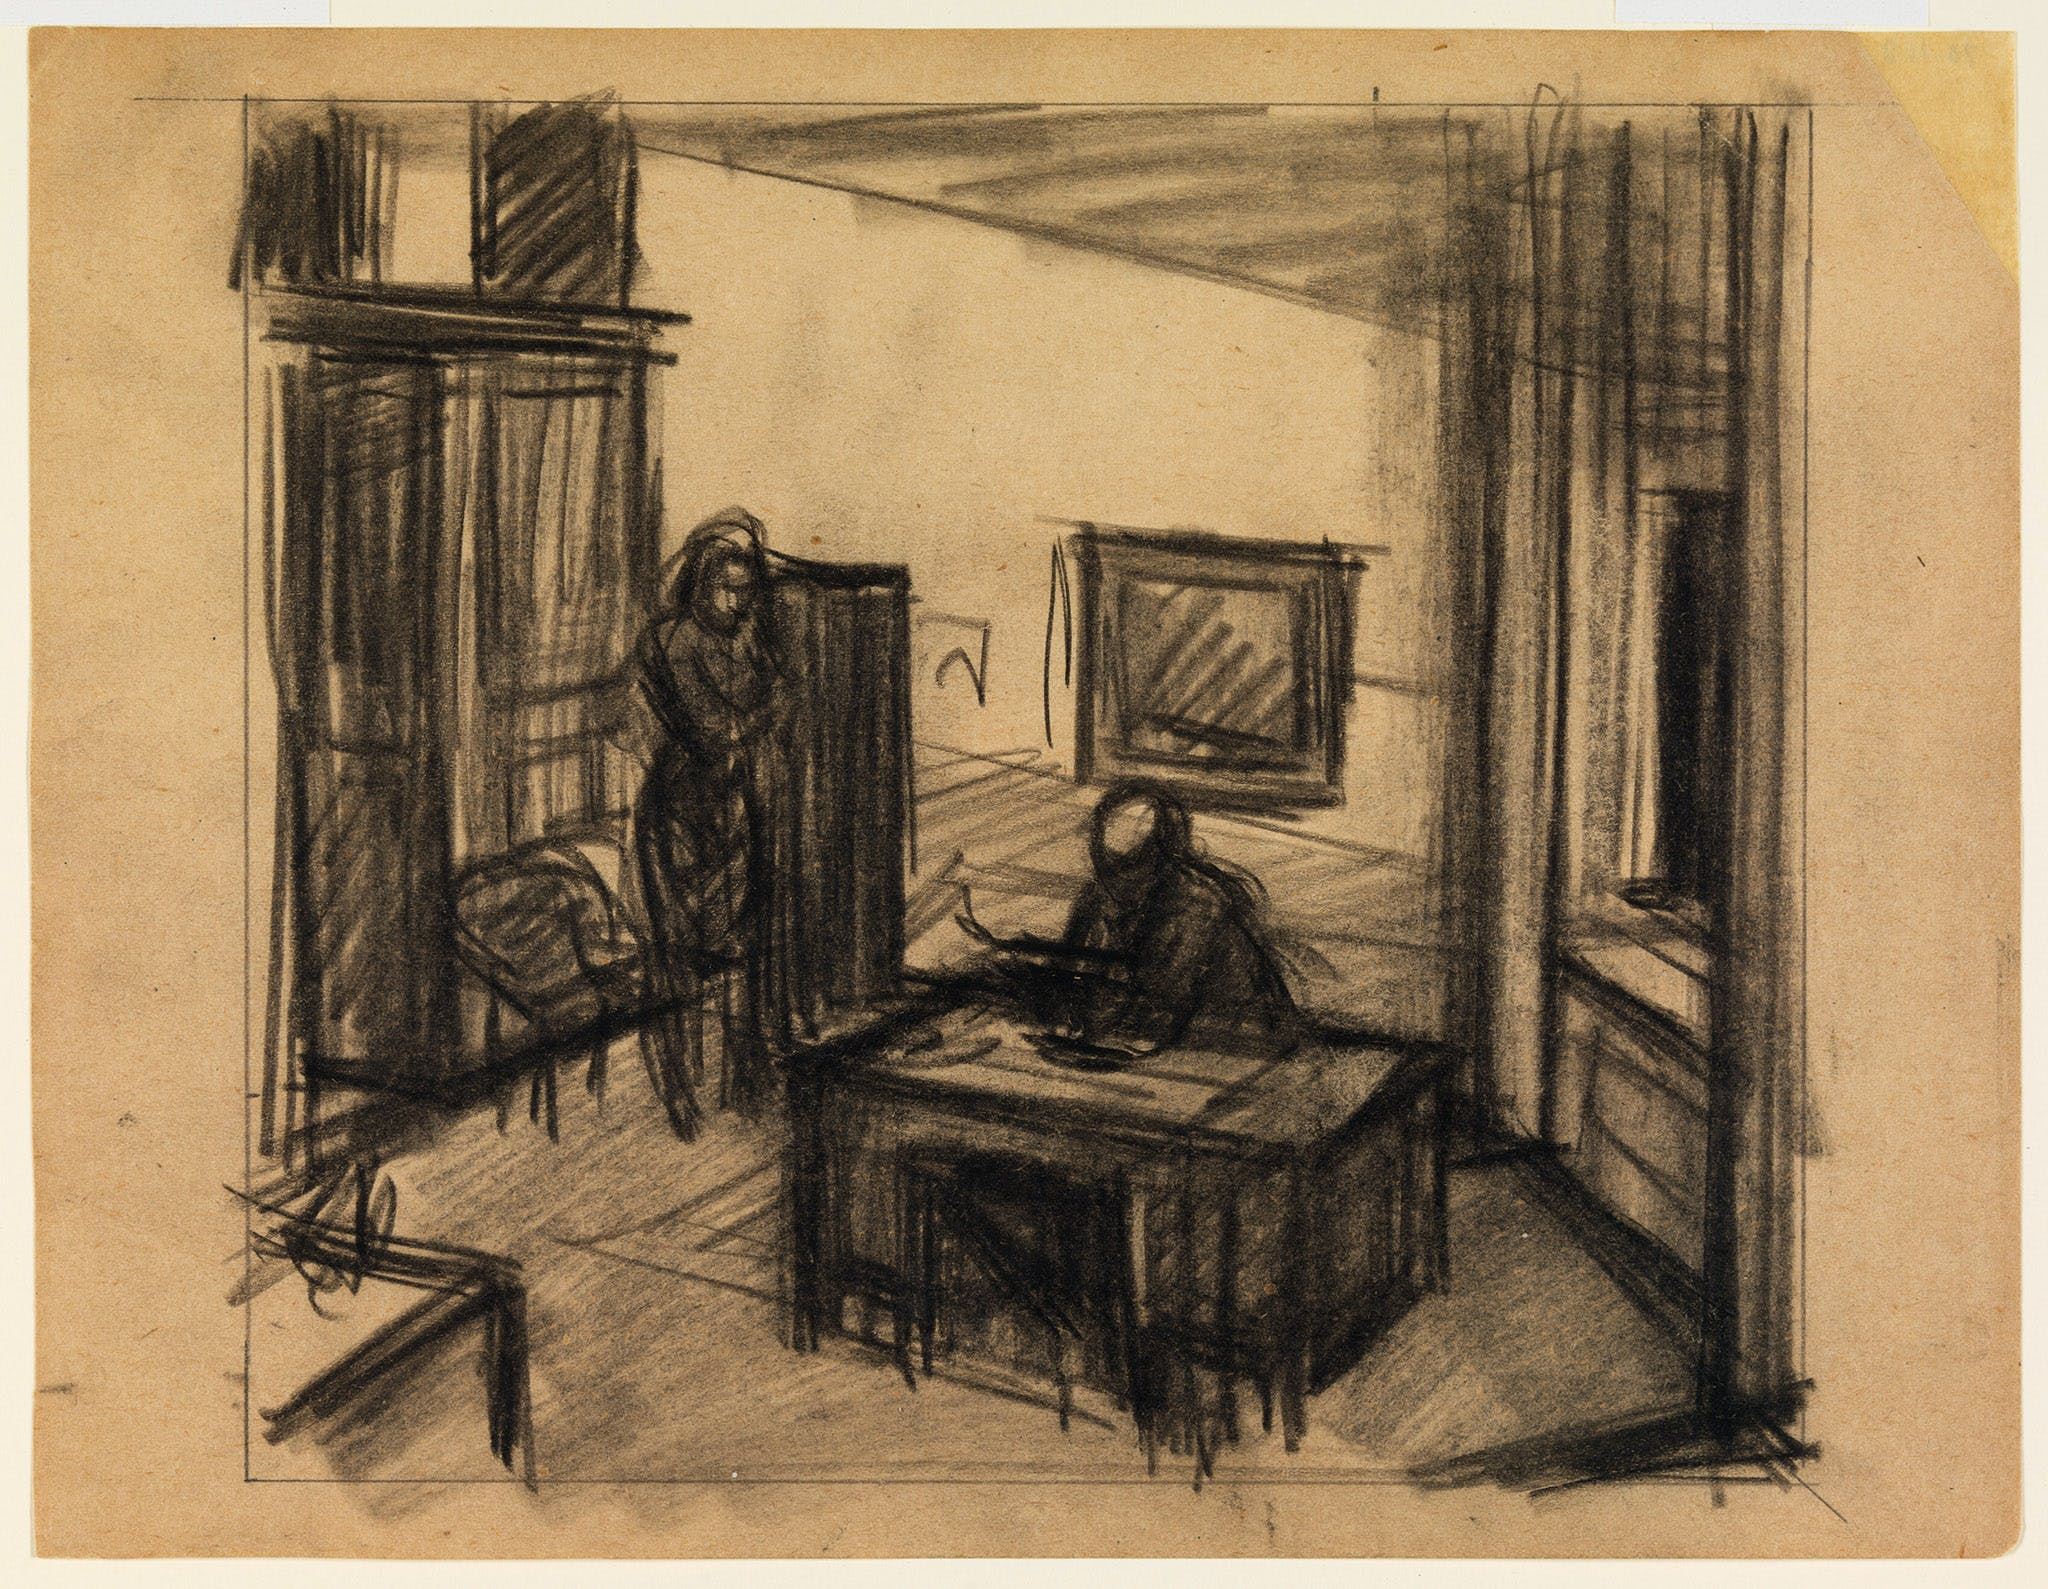 Edward Hopper, Study for Office at Night, 1940